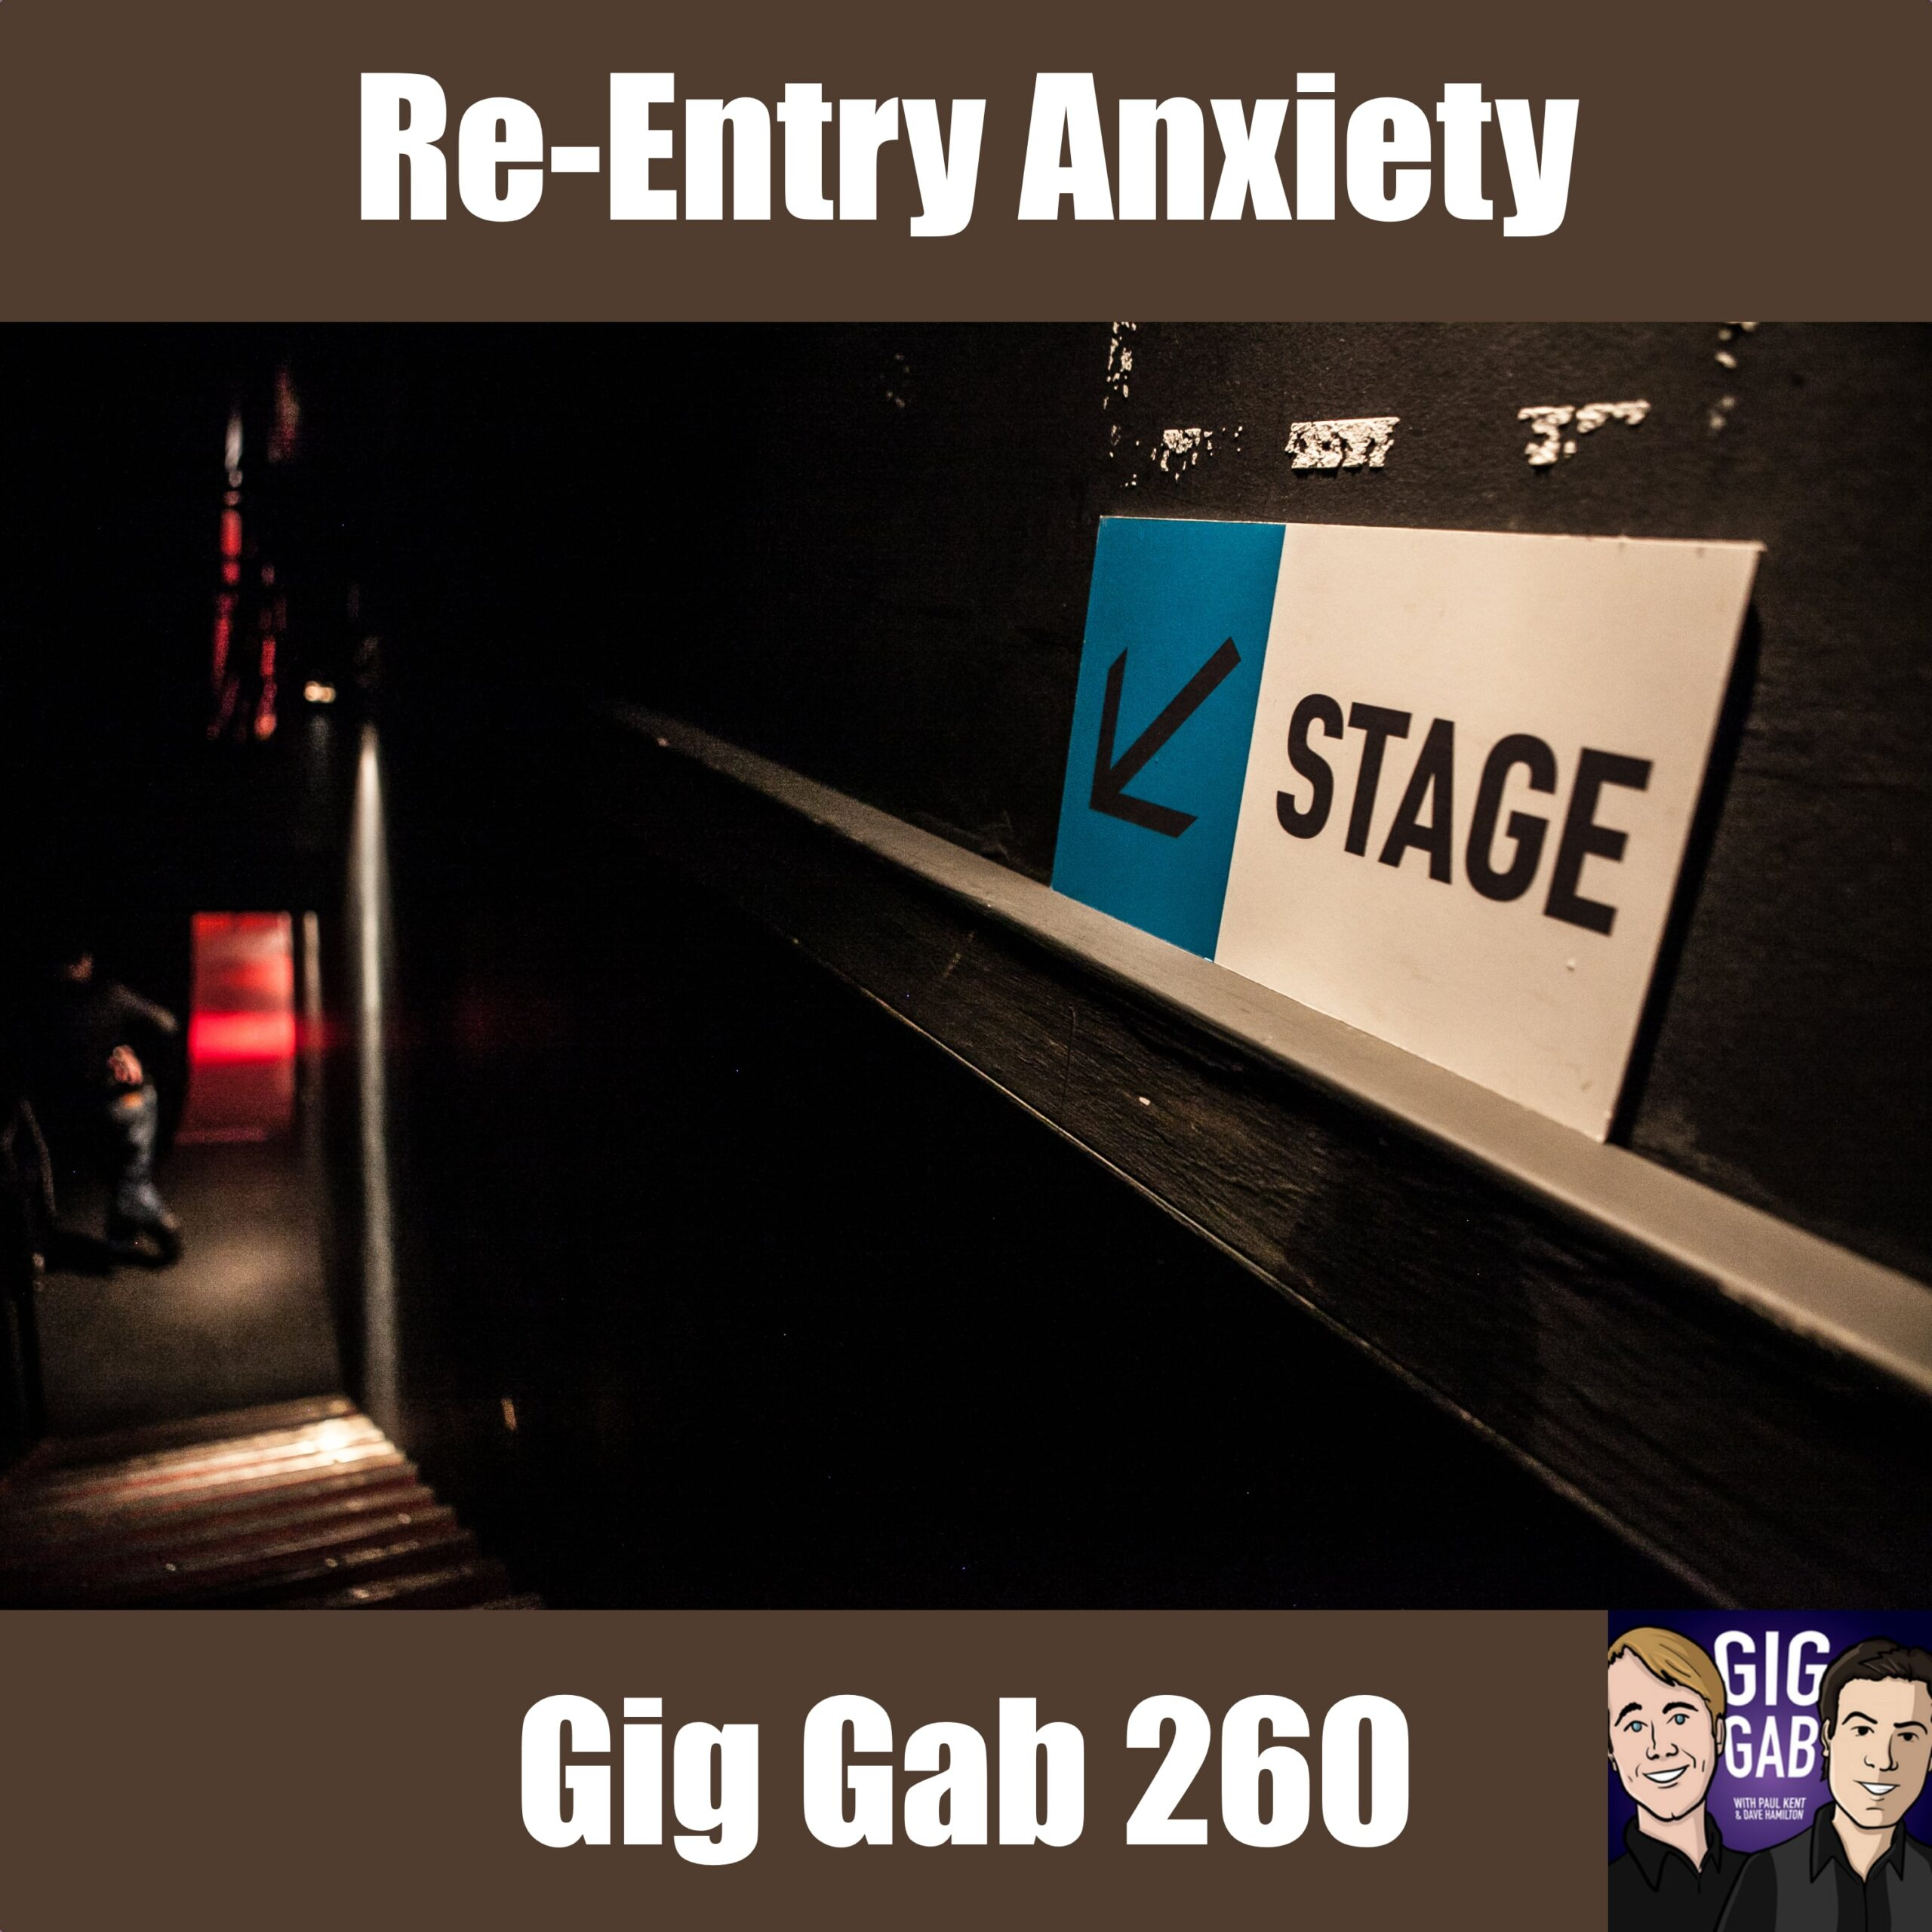 Picture of stairs down to the stage with text Re-Entry Anxiety — Gig Gab 260